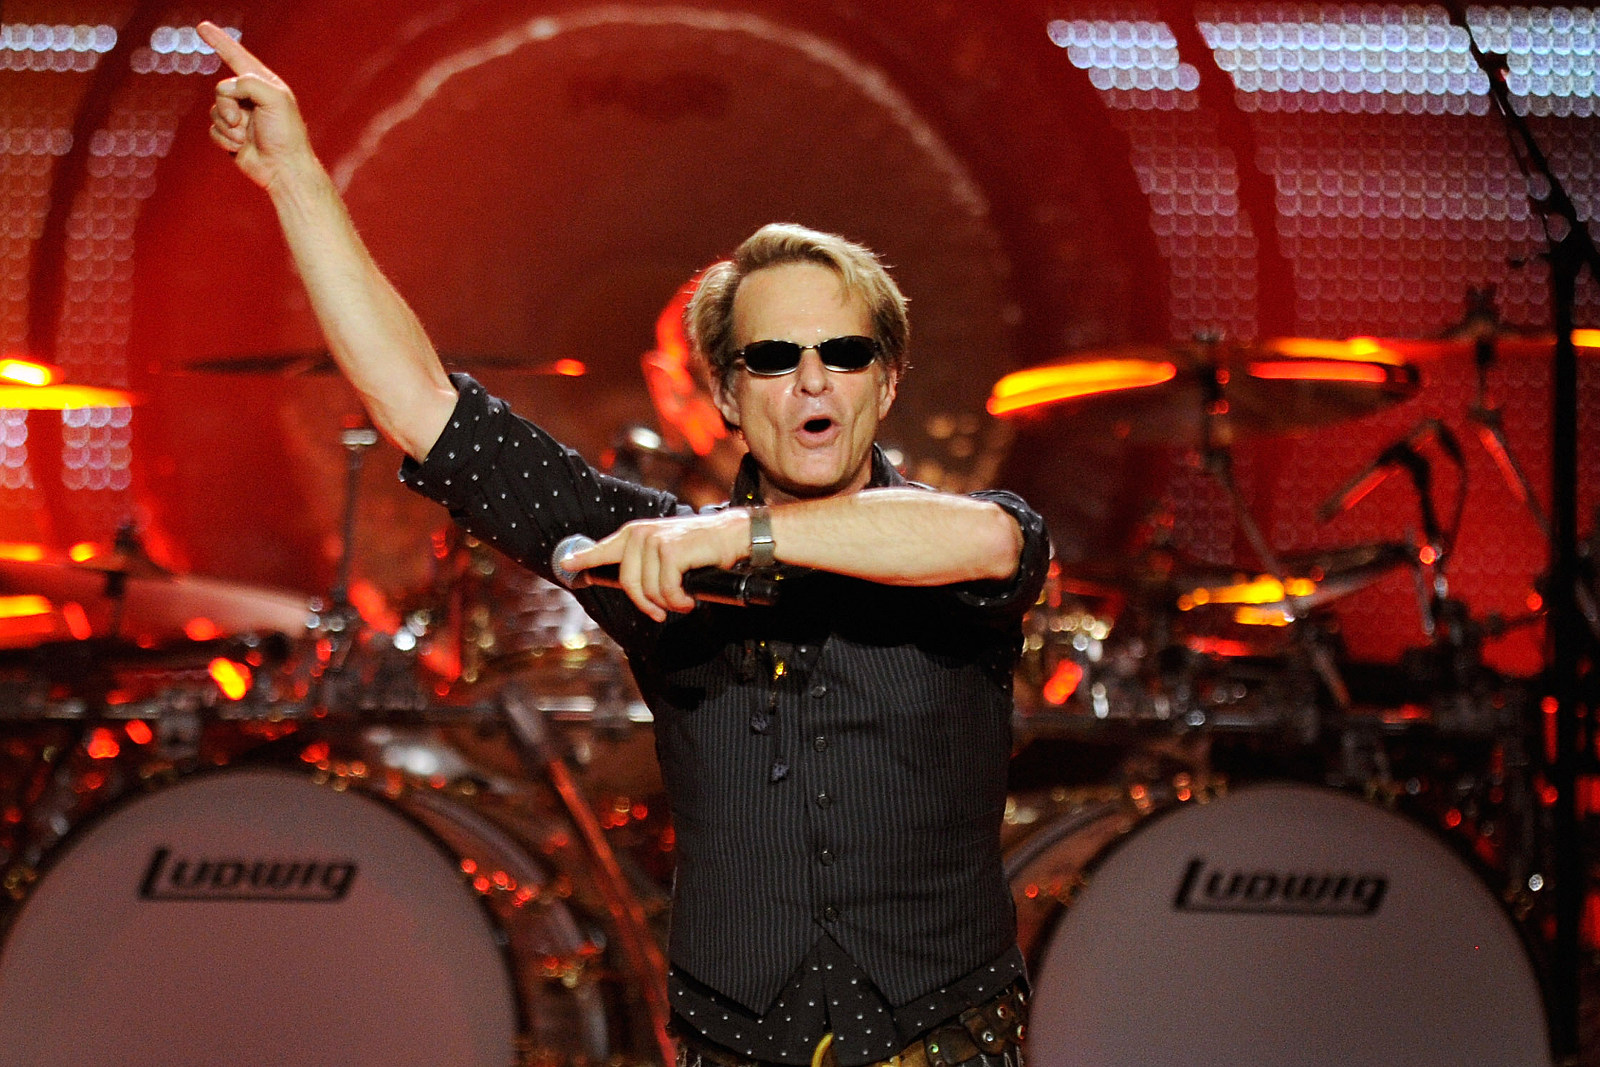 David Lee Roth Takes Most of the Credit for Van Halen's Success